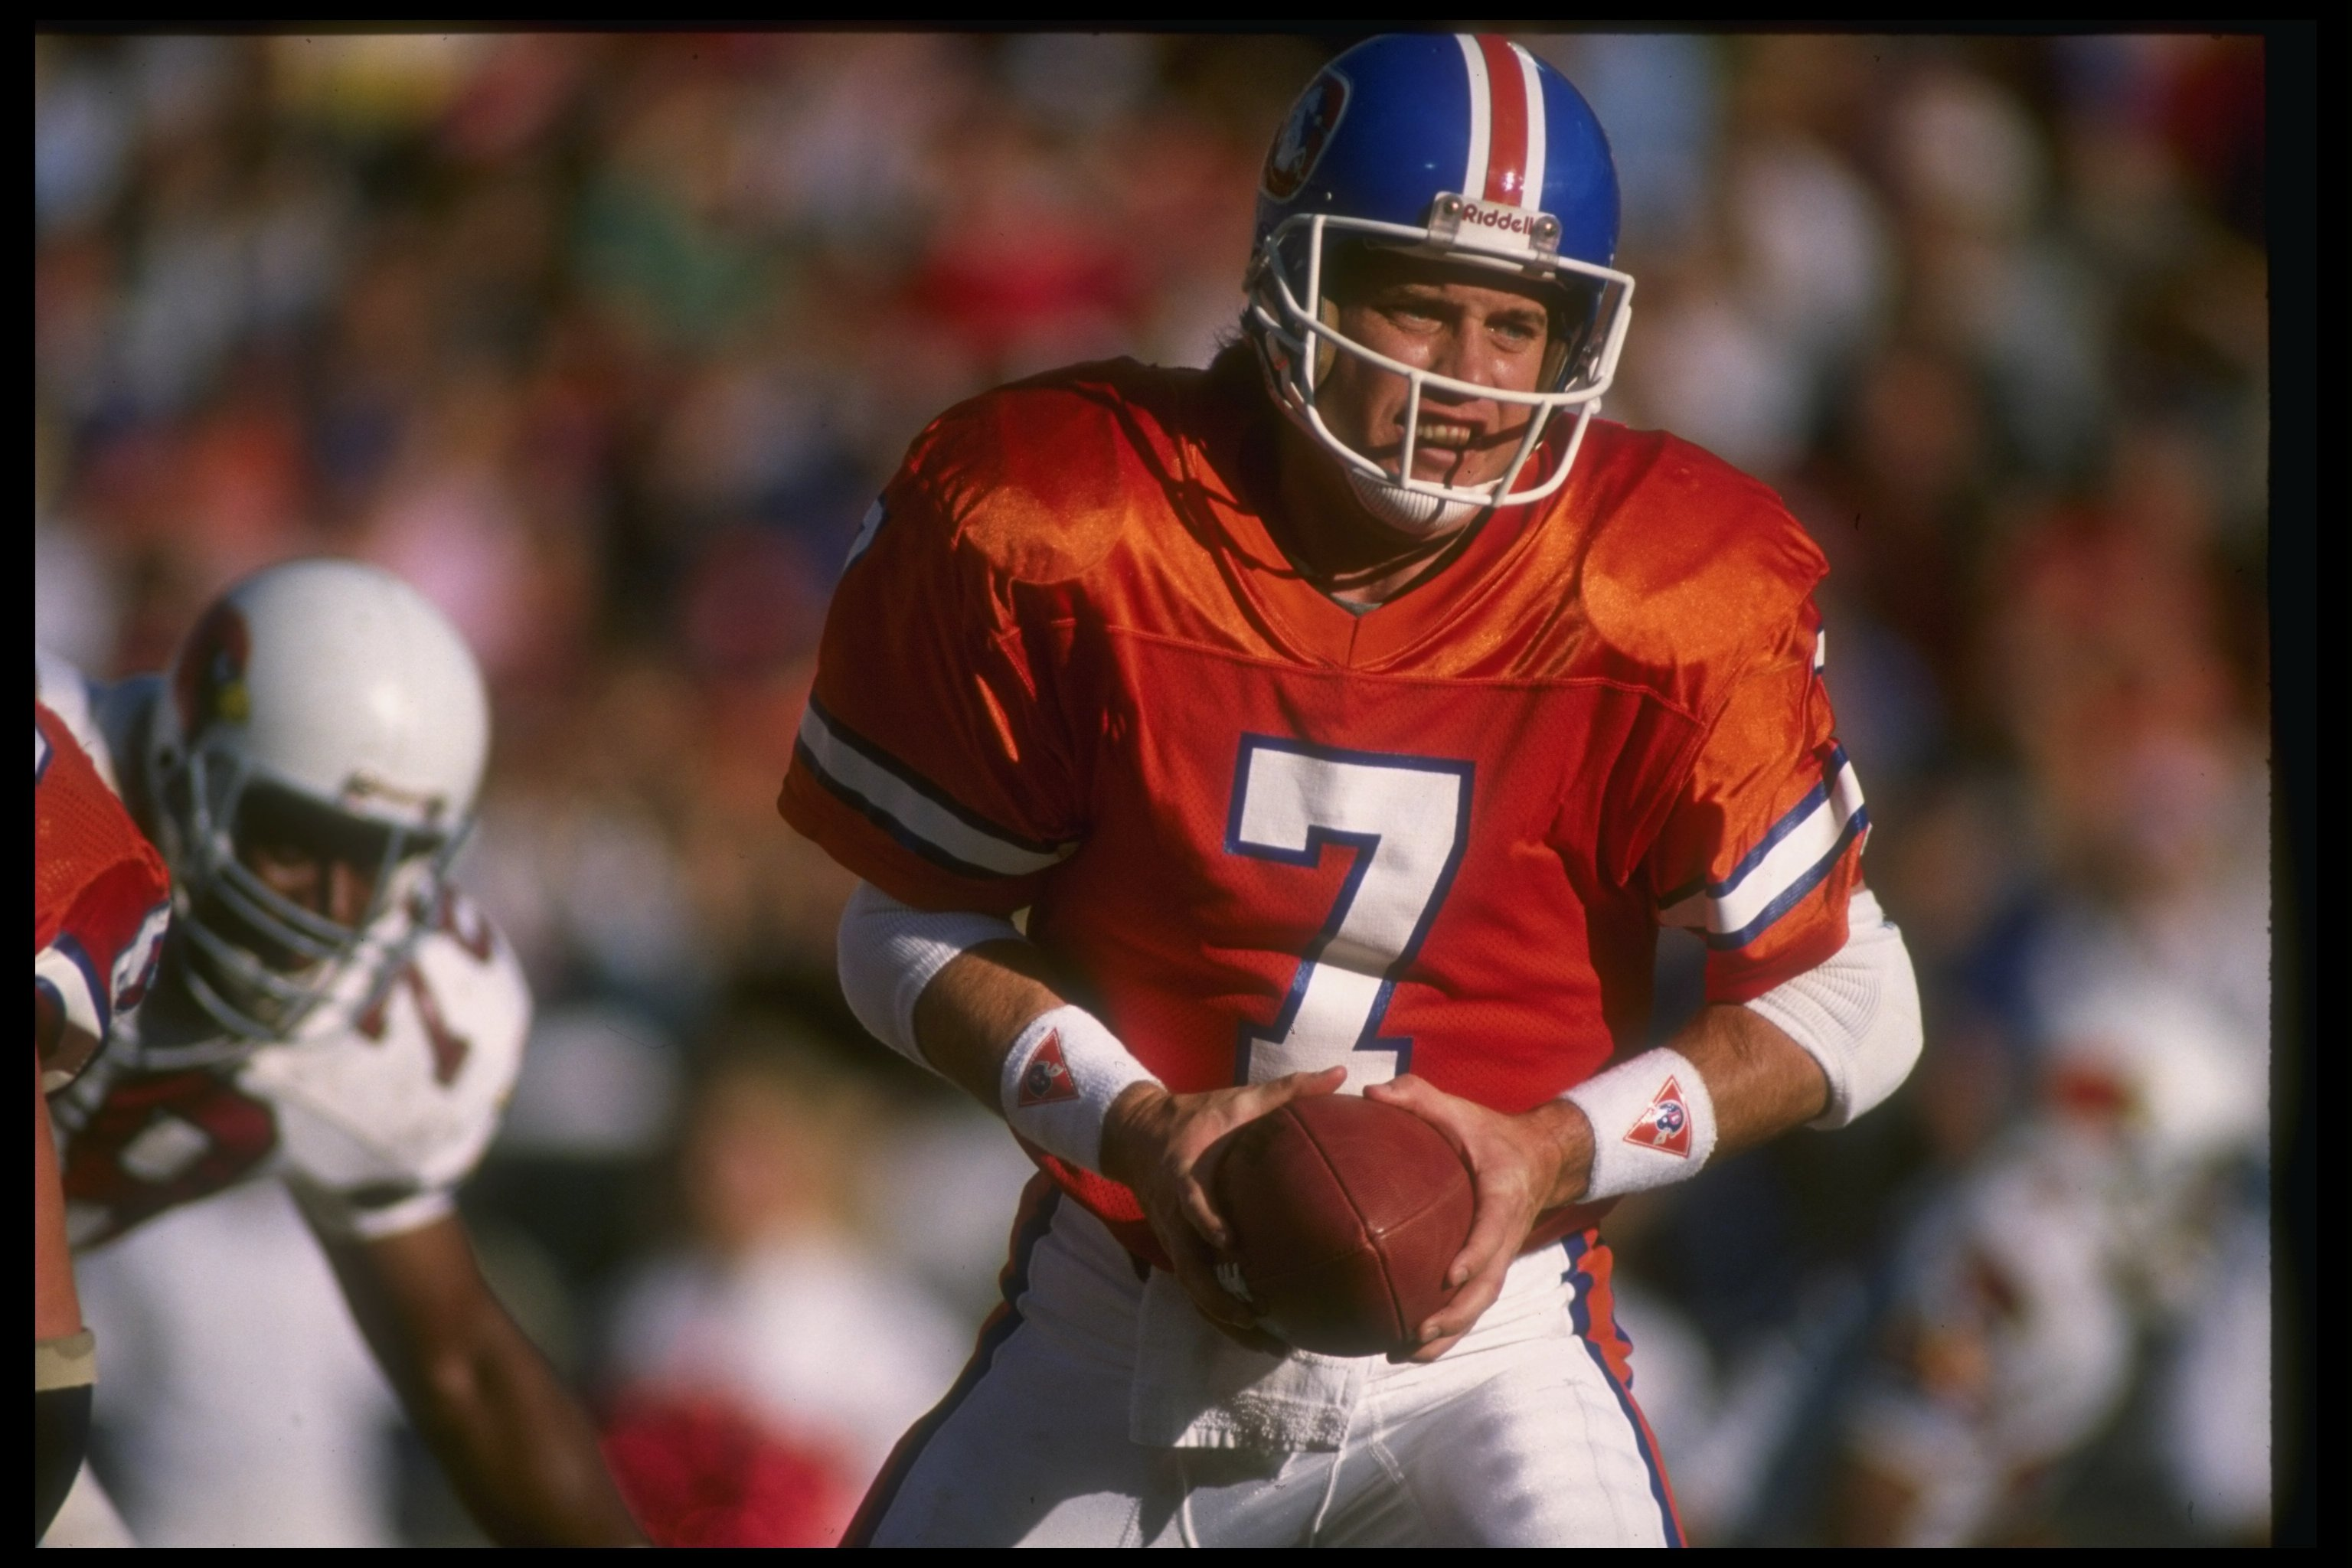 Quarterback John Elway of the Denver Broncos prepares to hand off the ball during a game against the Arizona Cardinals at Mile High Stadium in Denver on Dec. 16, 1989. The Broncos won the game, 37-0. (credit: Stephen Dunn  /Allsport/Getty Images)